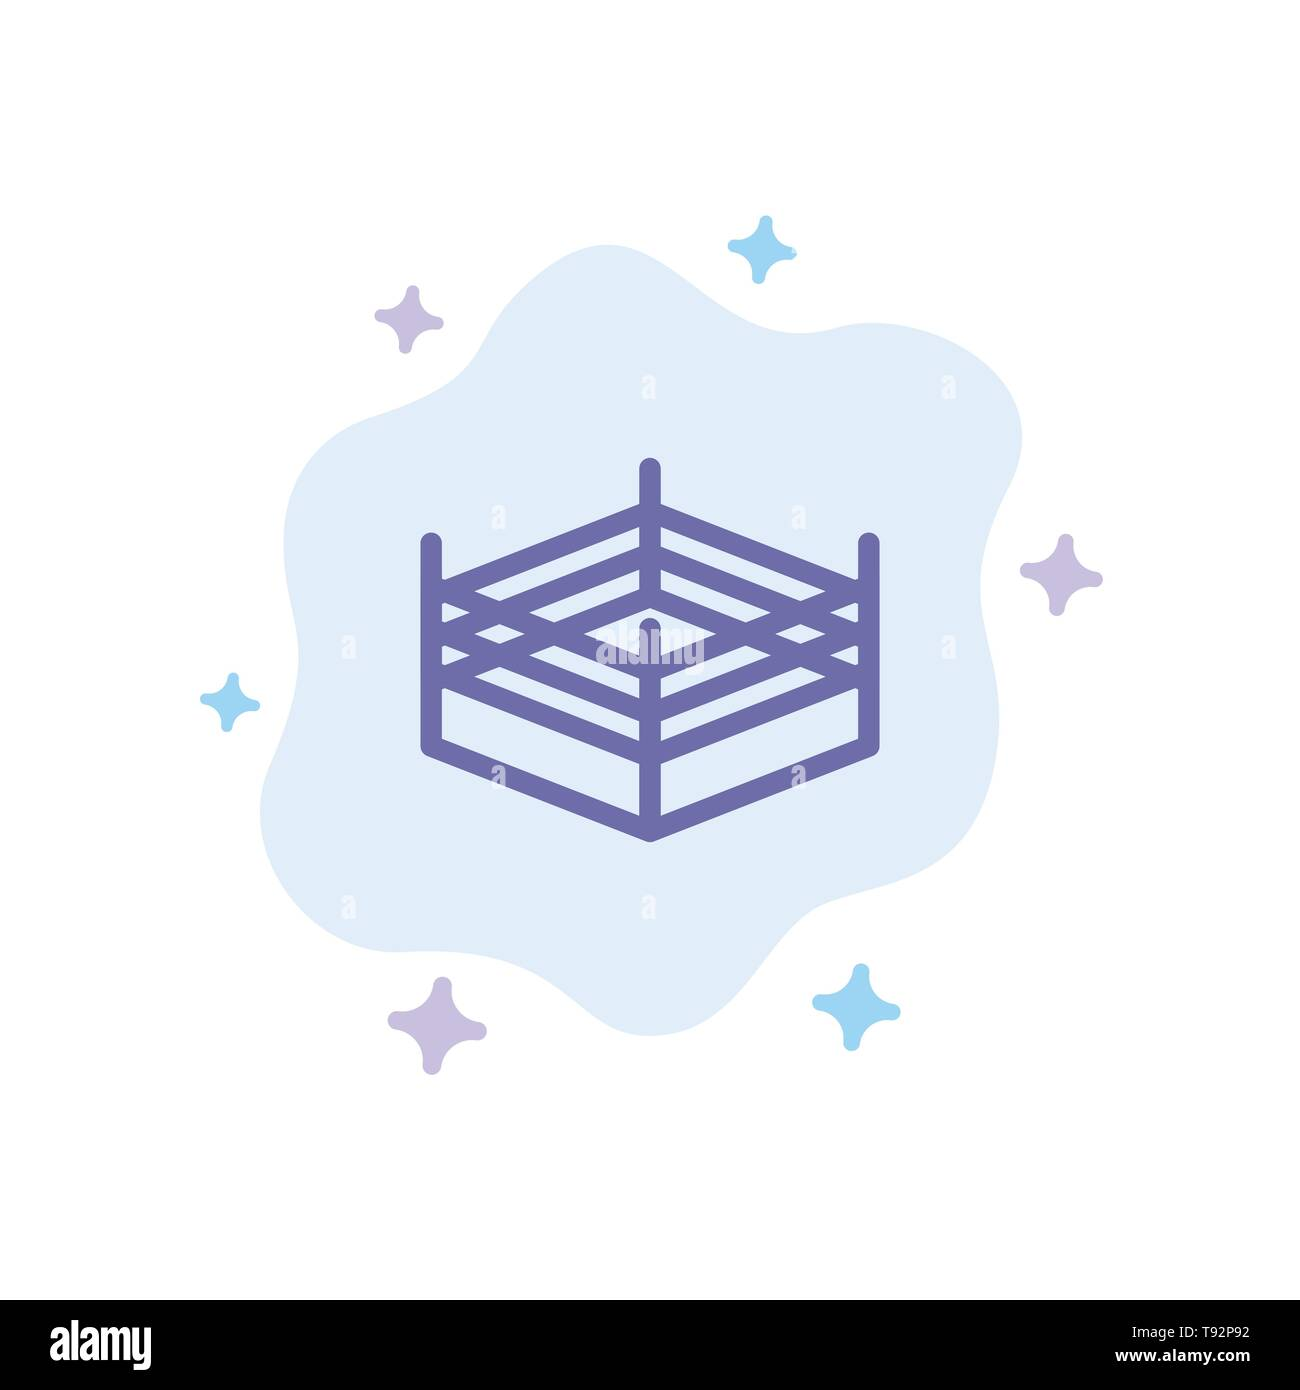 Boxing, Ring, Wrestling Blue Icon on Abstract Cloud Background - Stock Image